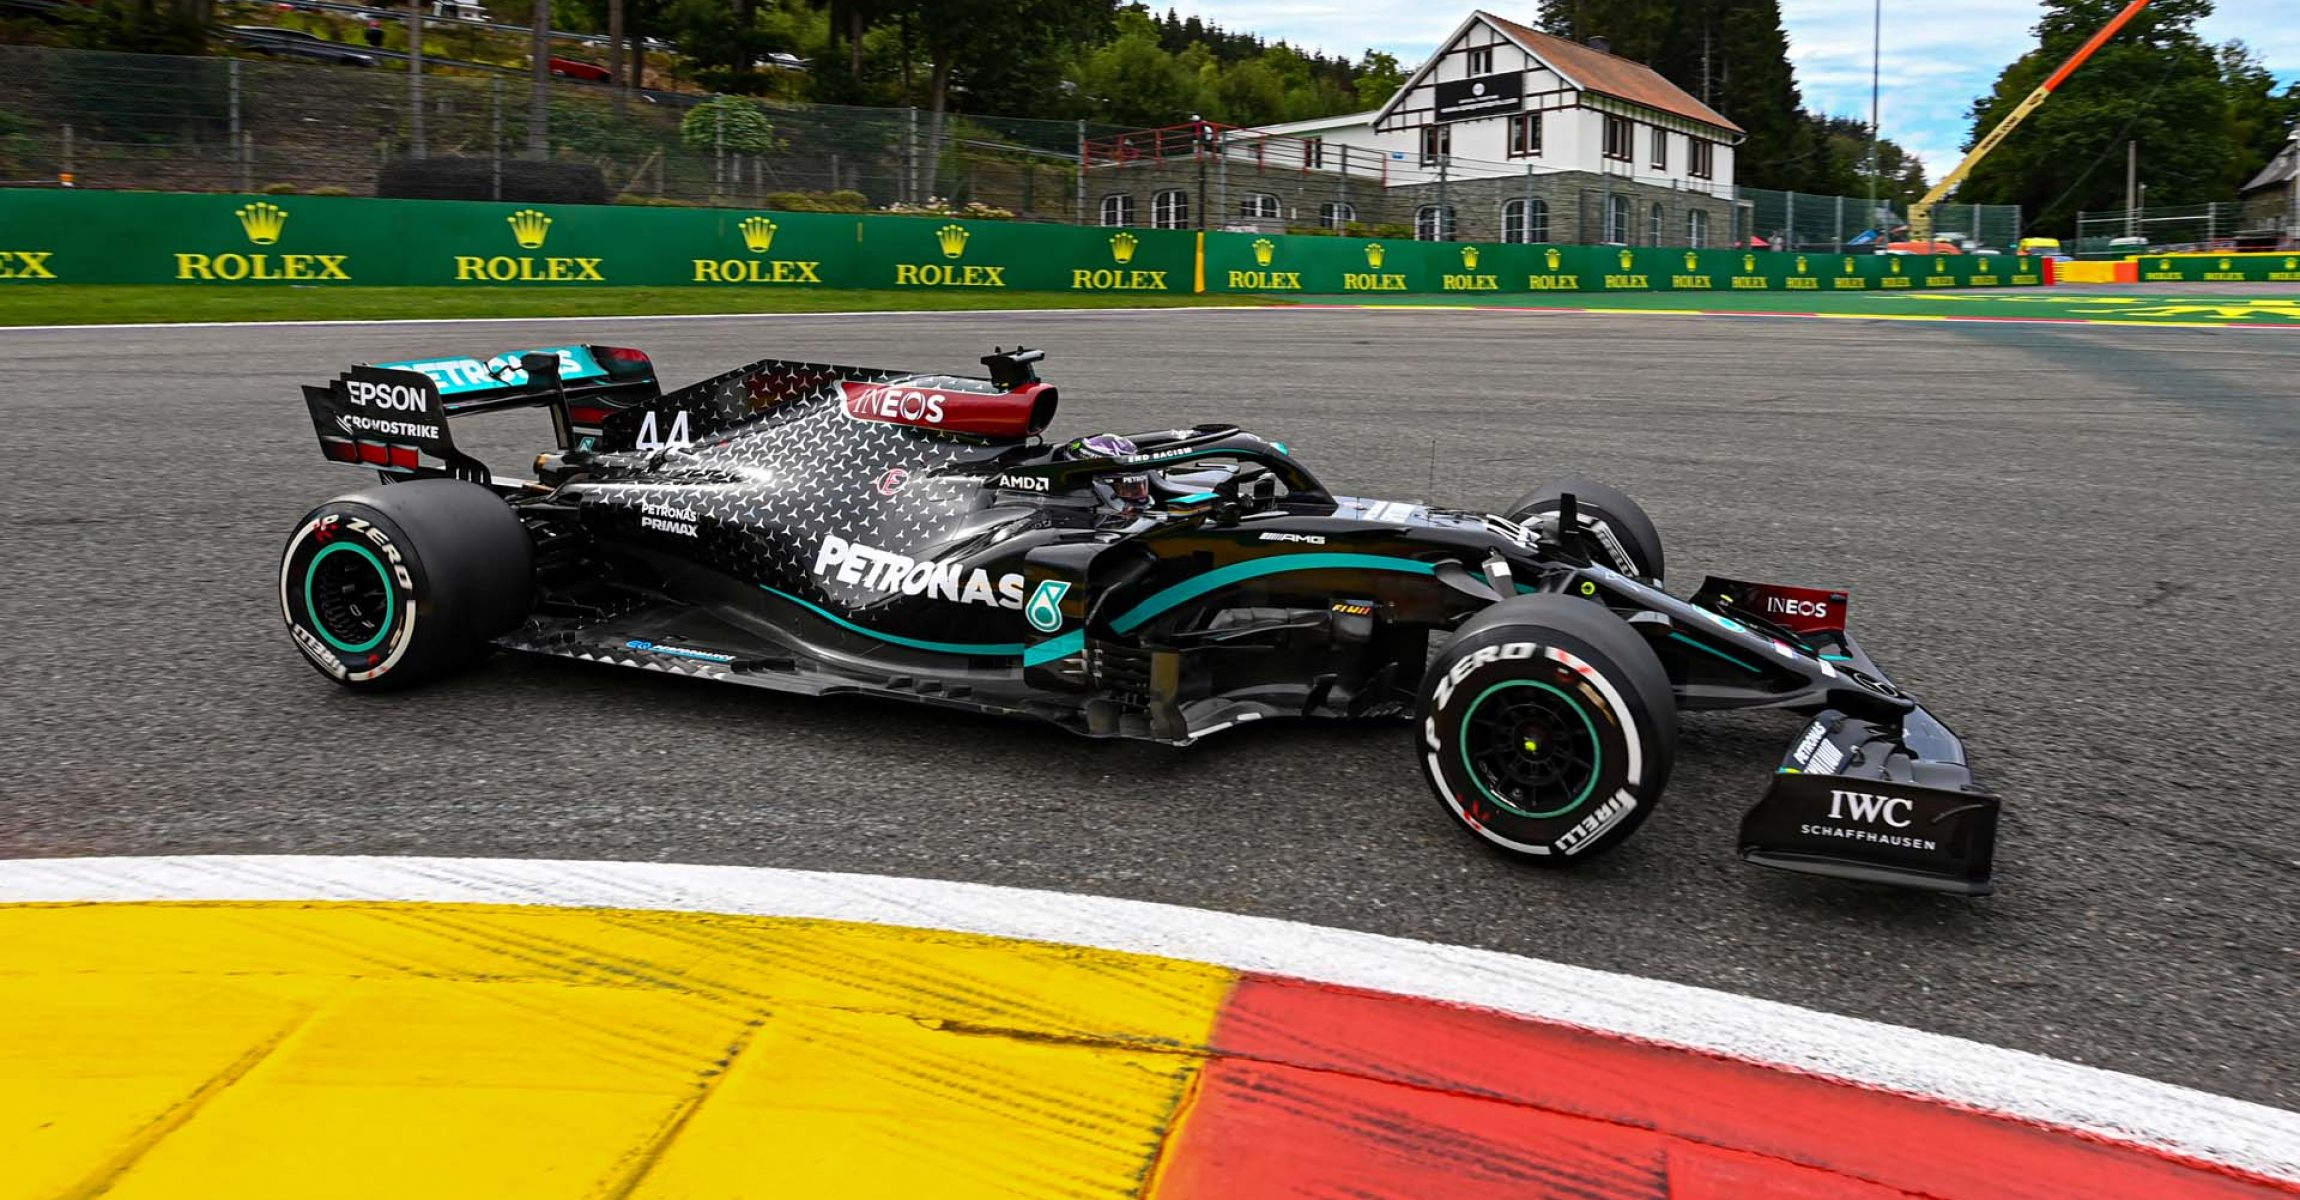 2020 Belgian Grand Prix, Friday - LAT Images Lewis Hamilton Mercedes